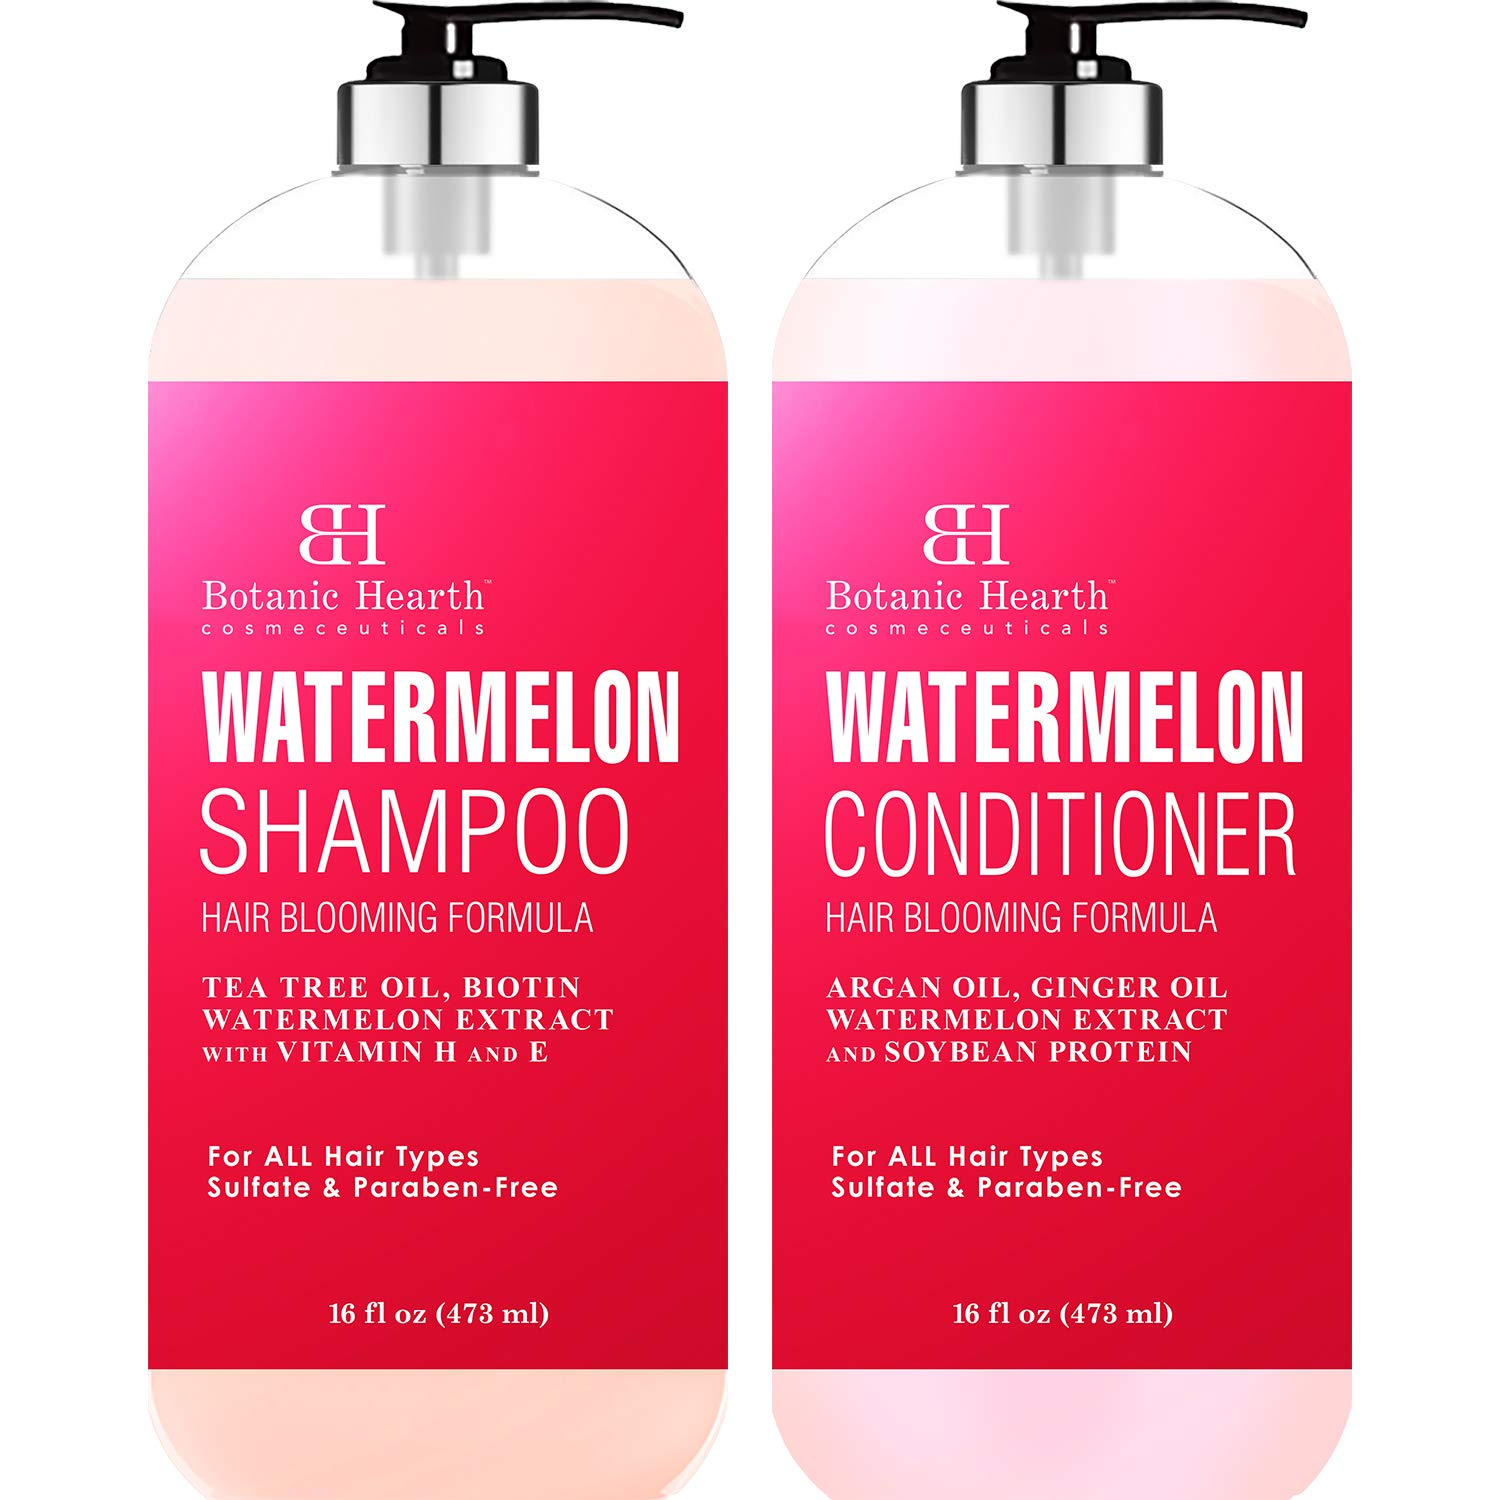 BOTANIC HEARTH Watermelon Shampoo and Conditioner Set - Promotes Hair Growth, Fights Hair Loss, Moisturizes, Sulfate & Paraben Free - for ALL Hair Types, for Men and Women - 16 fl oz x 2 by Botanic Hearth